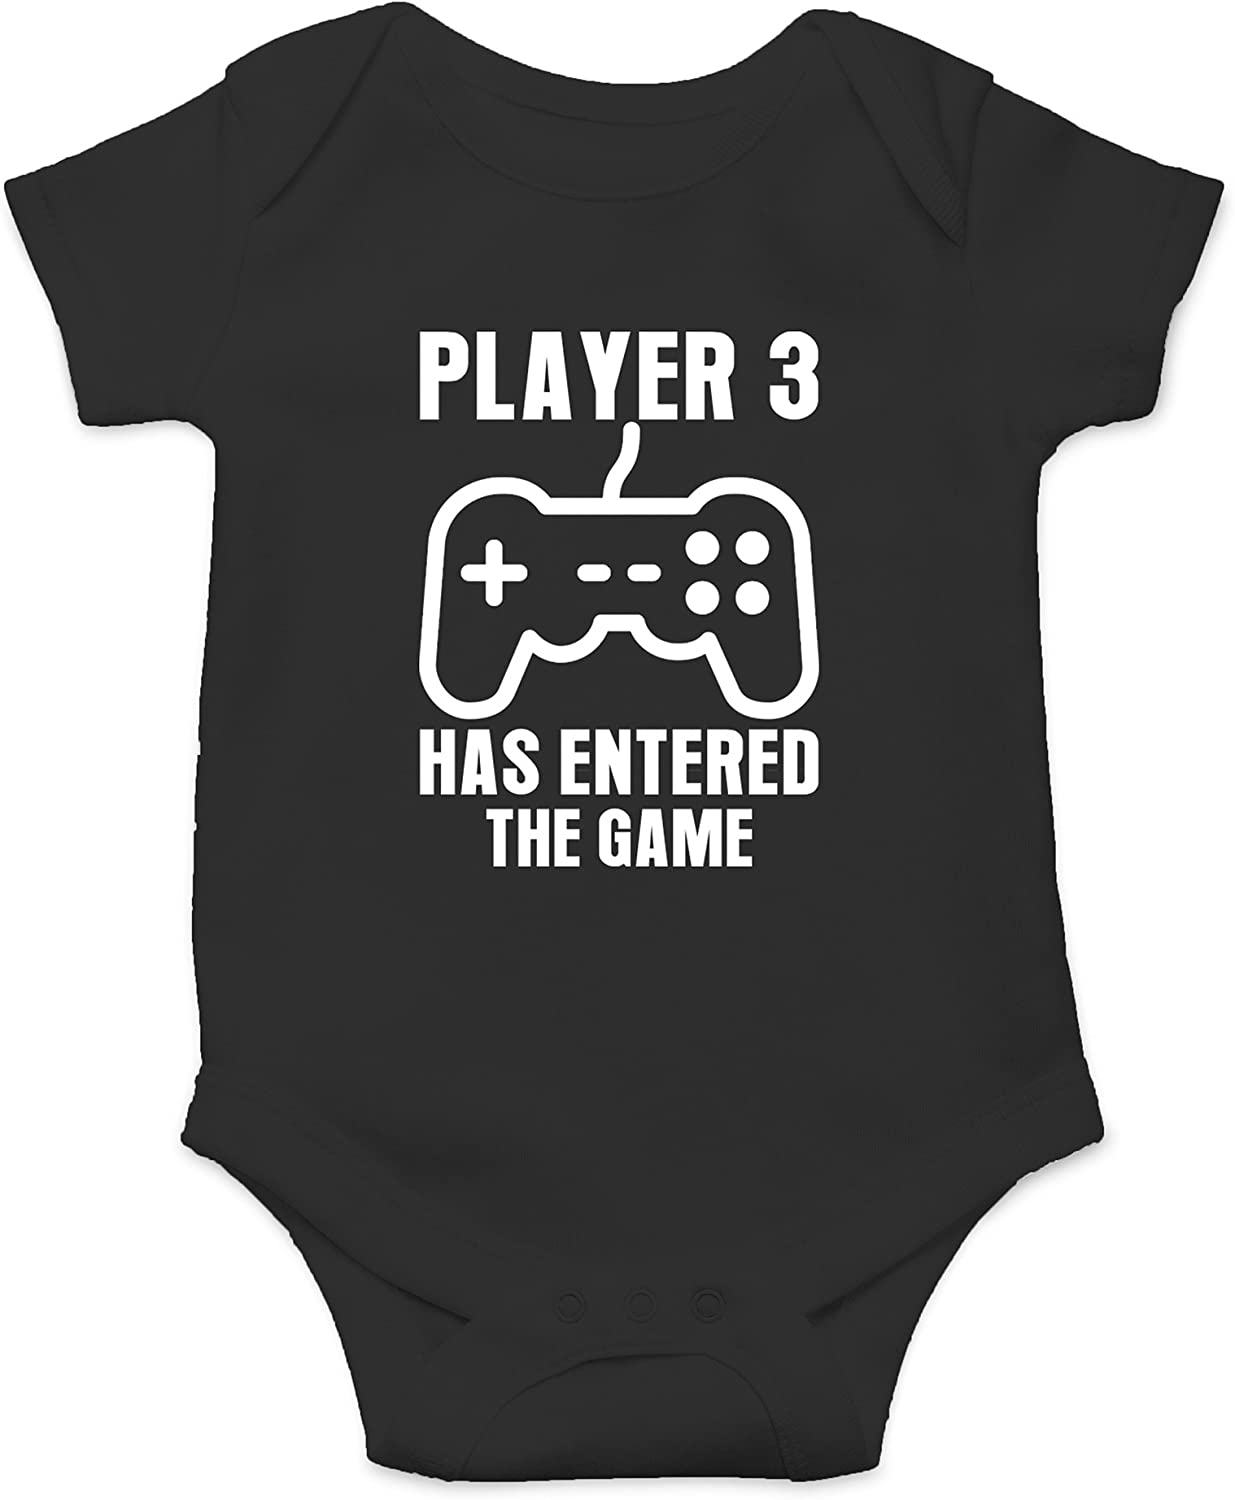 Gamer Baby Funny Cute Novelty Infant One-Piece Baby Bodysuit Crazy Bros Tees Player 3 Has Entered The Game